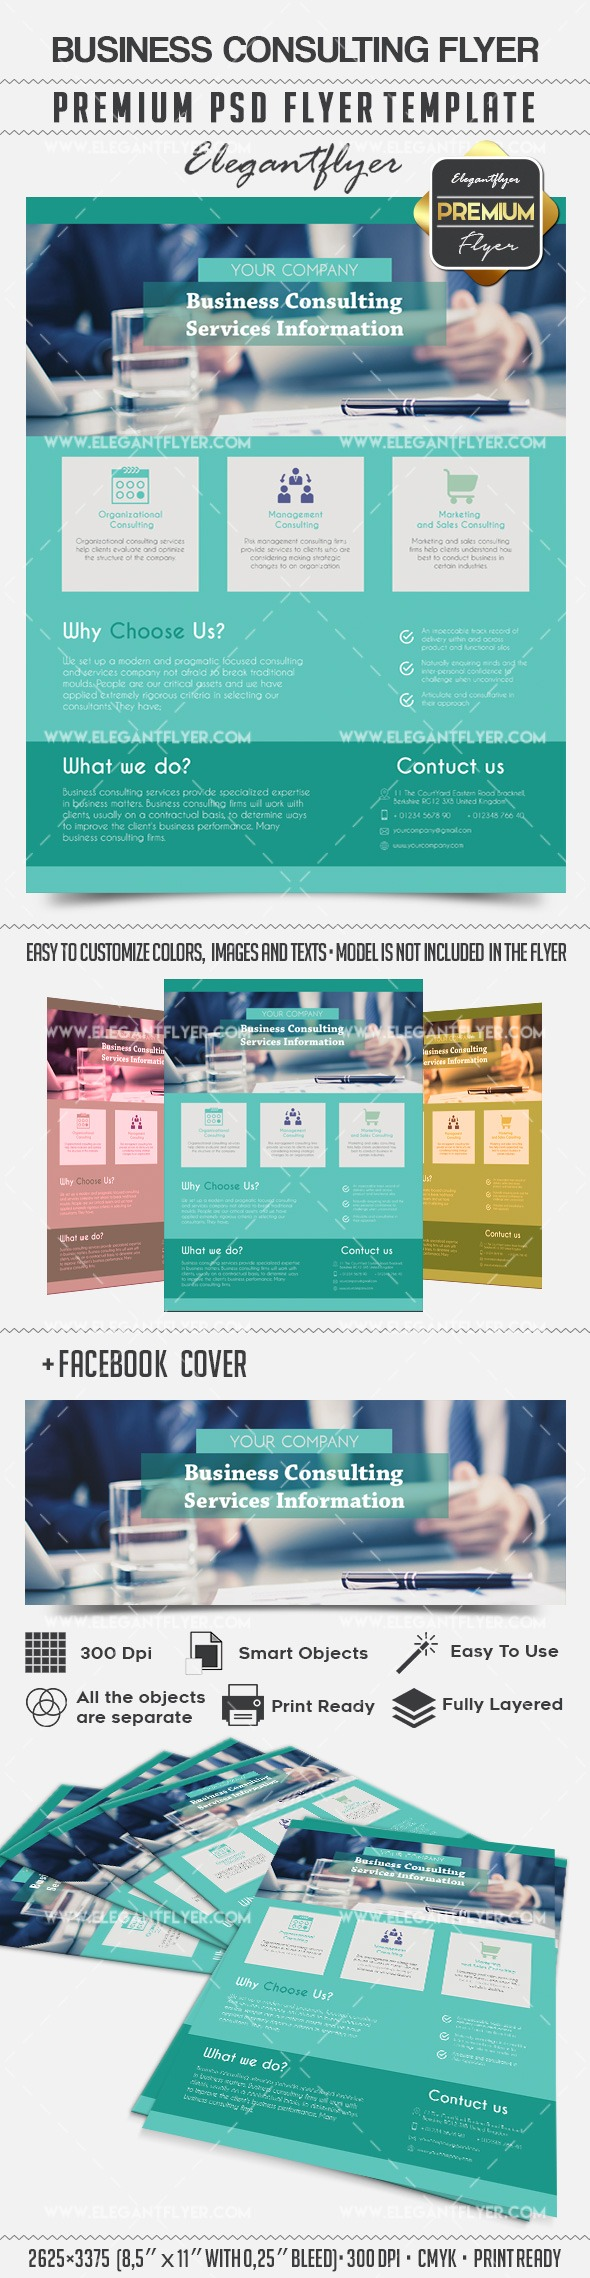 Business Conculting – Flyer PSD Template